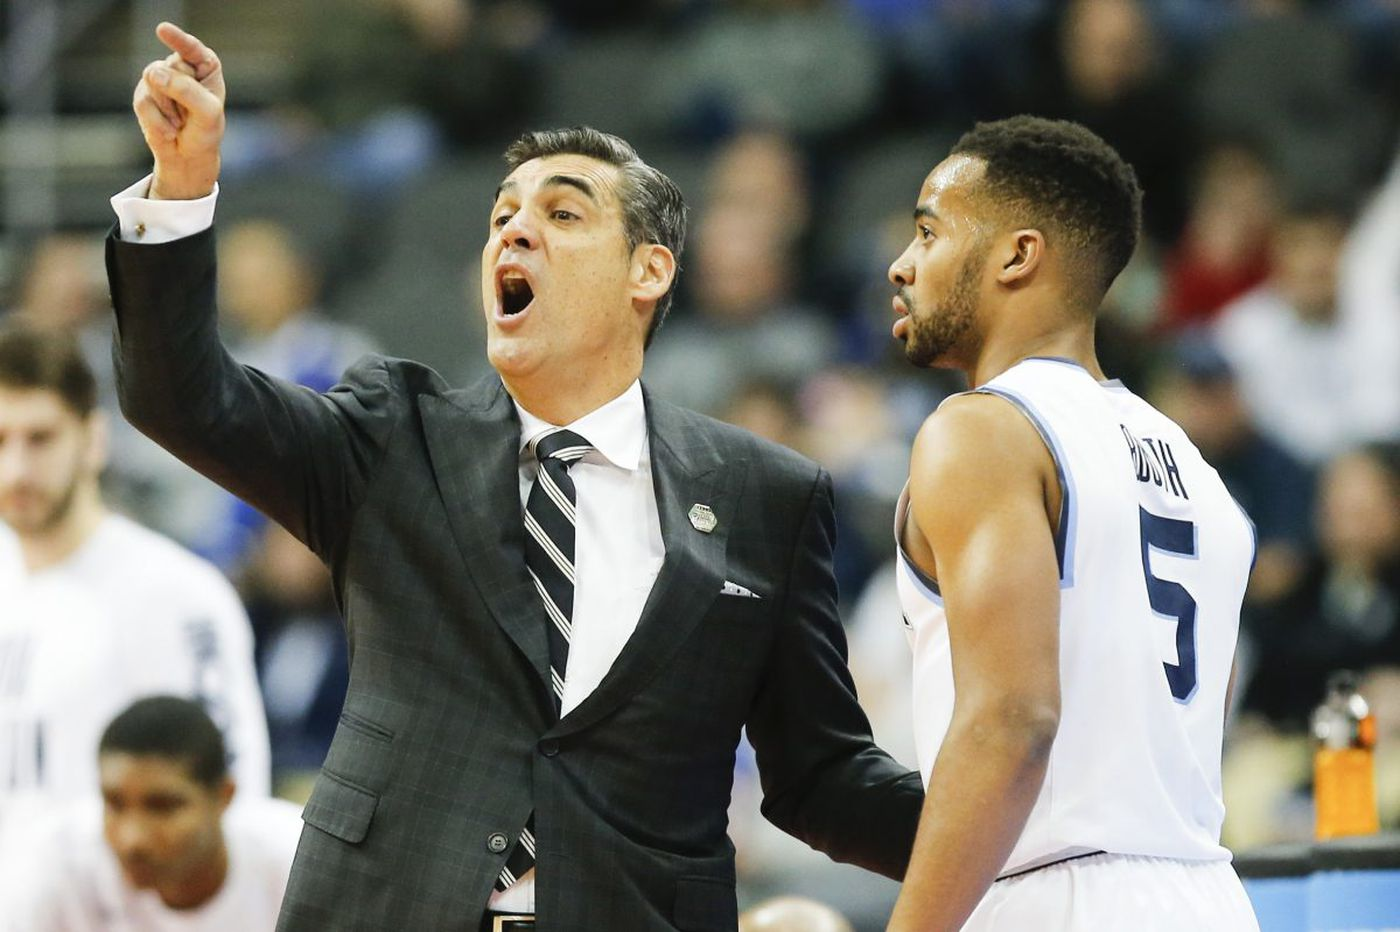 Business as usual for Villanova in Sweet 16, after weekend of upsets